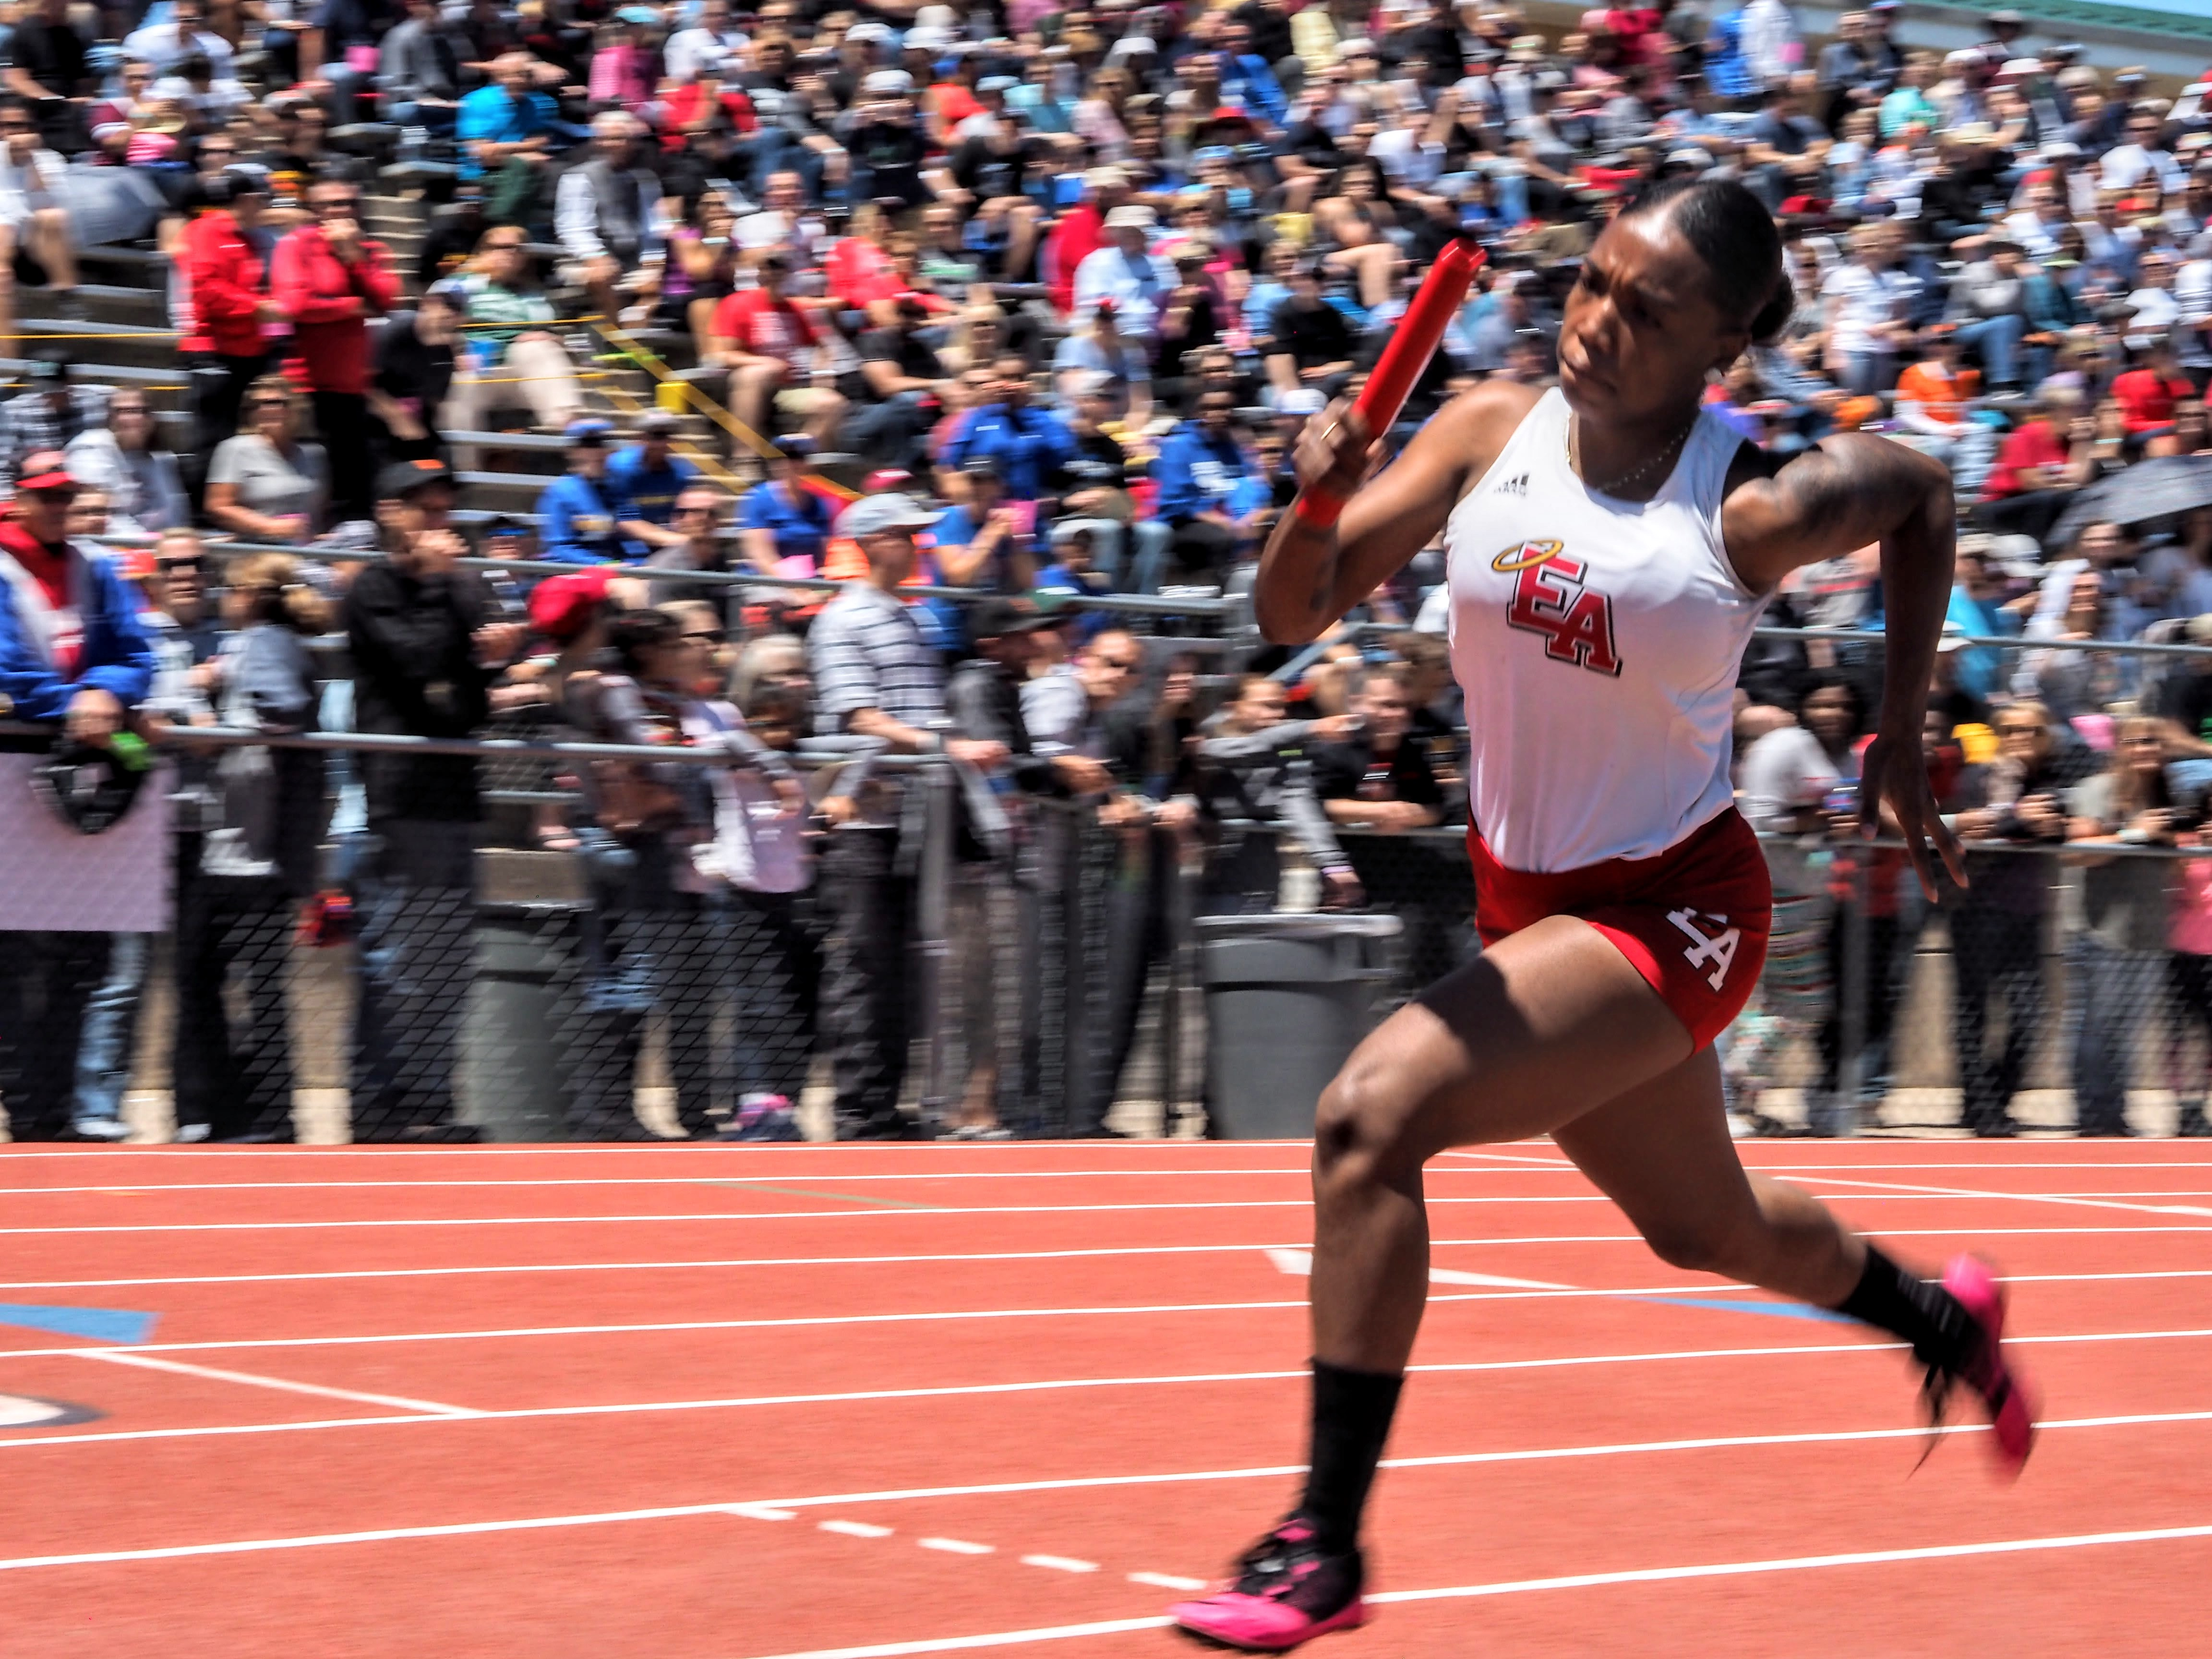 glenville state college high school track meet